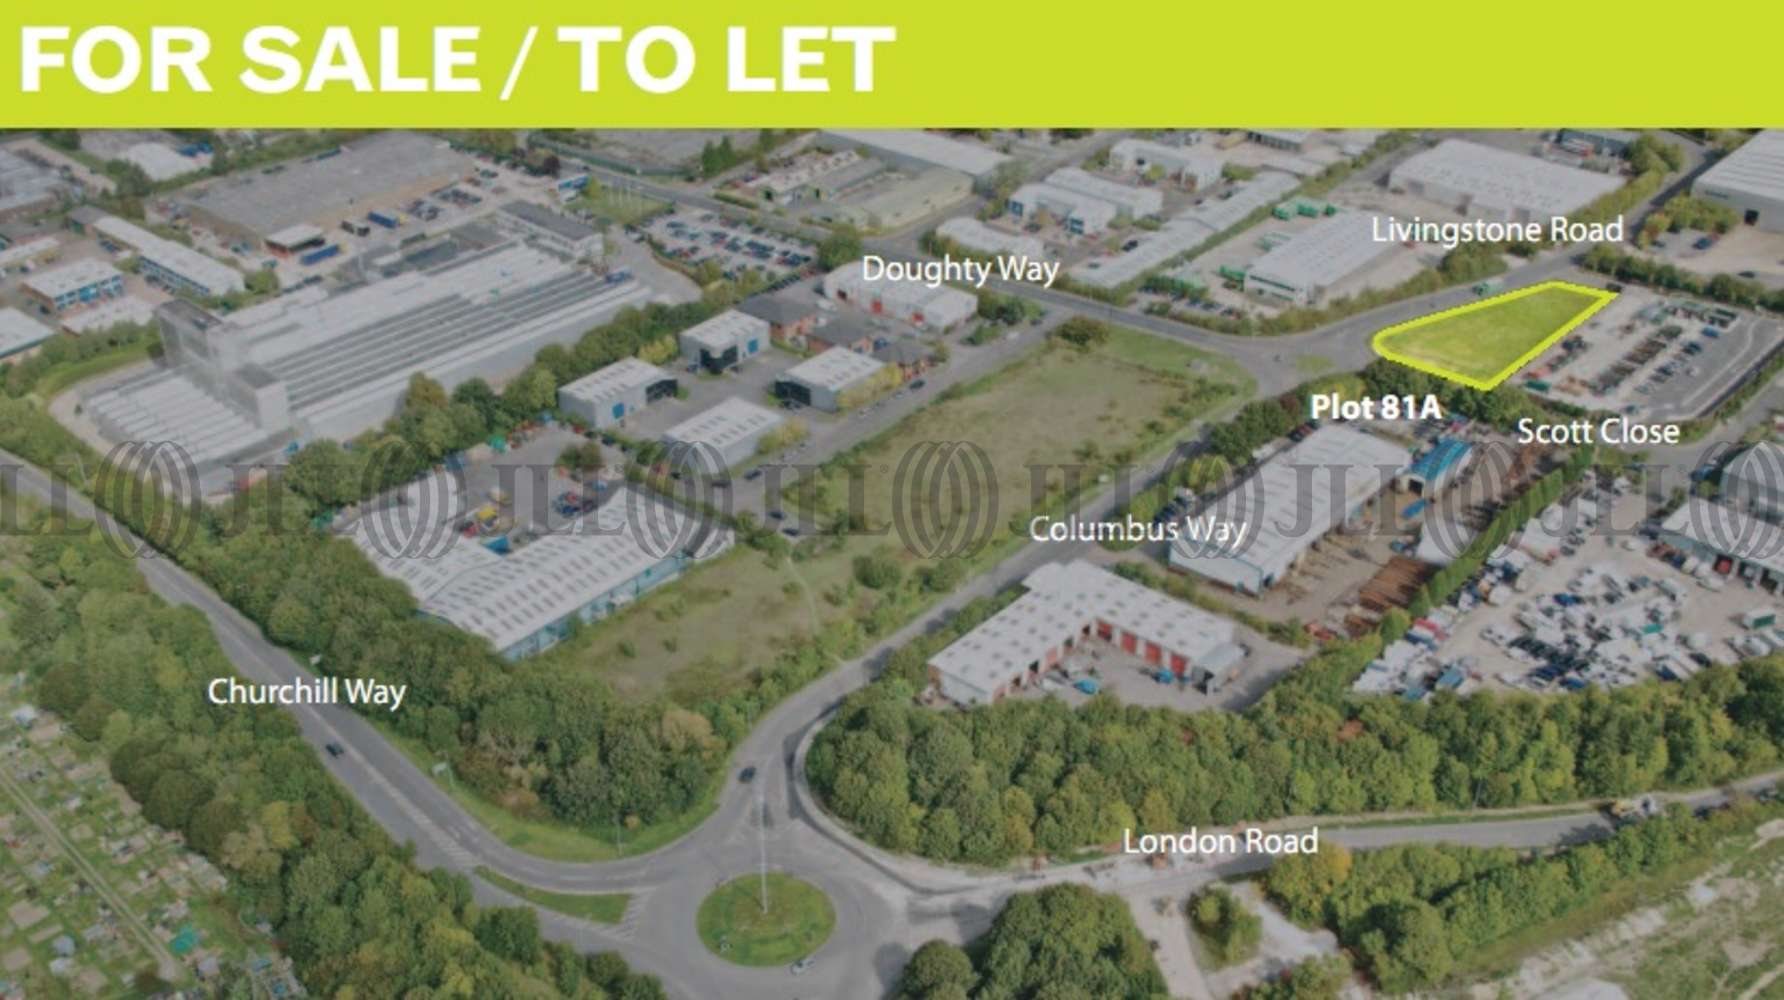 Industrial Andover, SP10 5LH - Plot 81a, Walworth Business Park - 7105